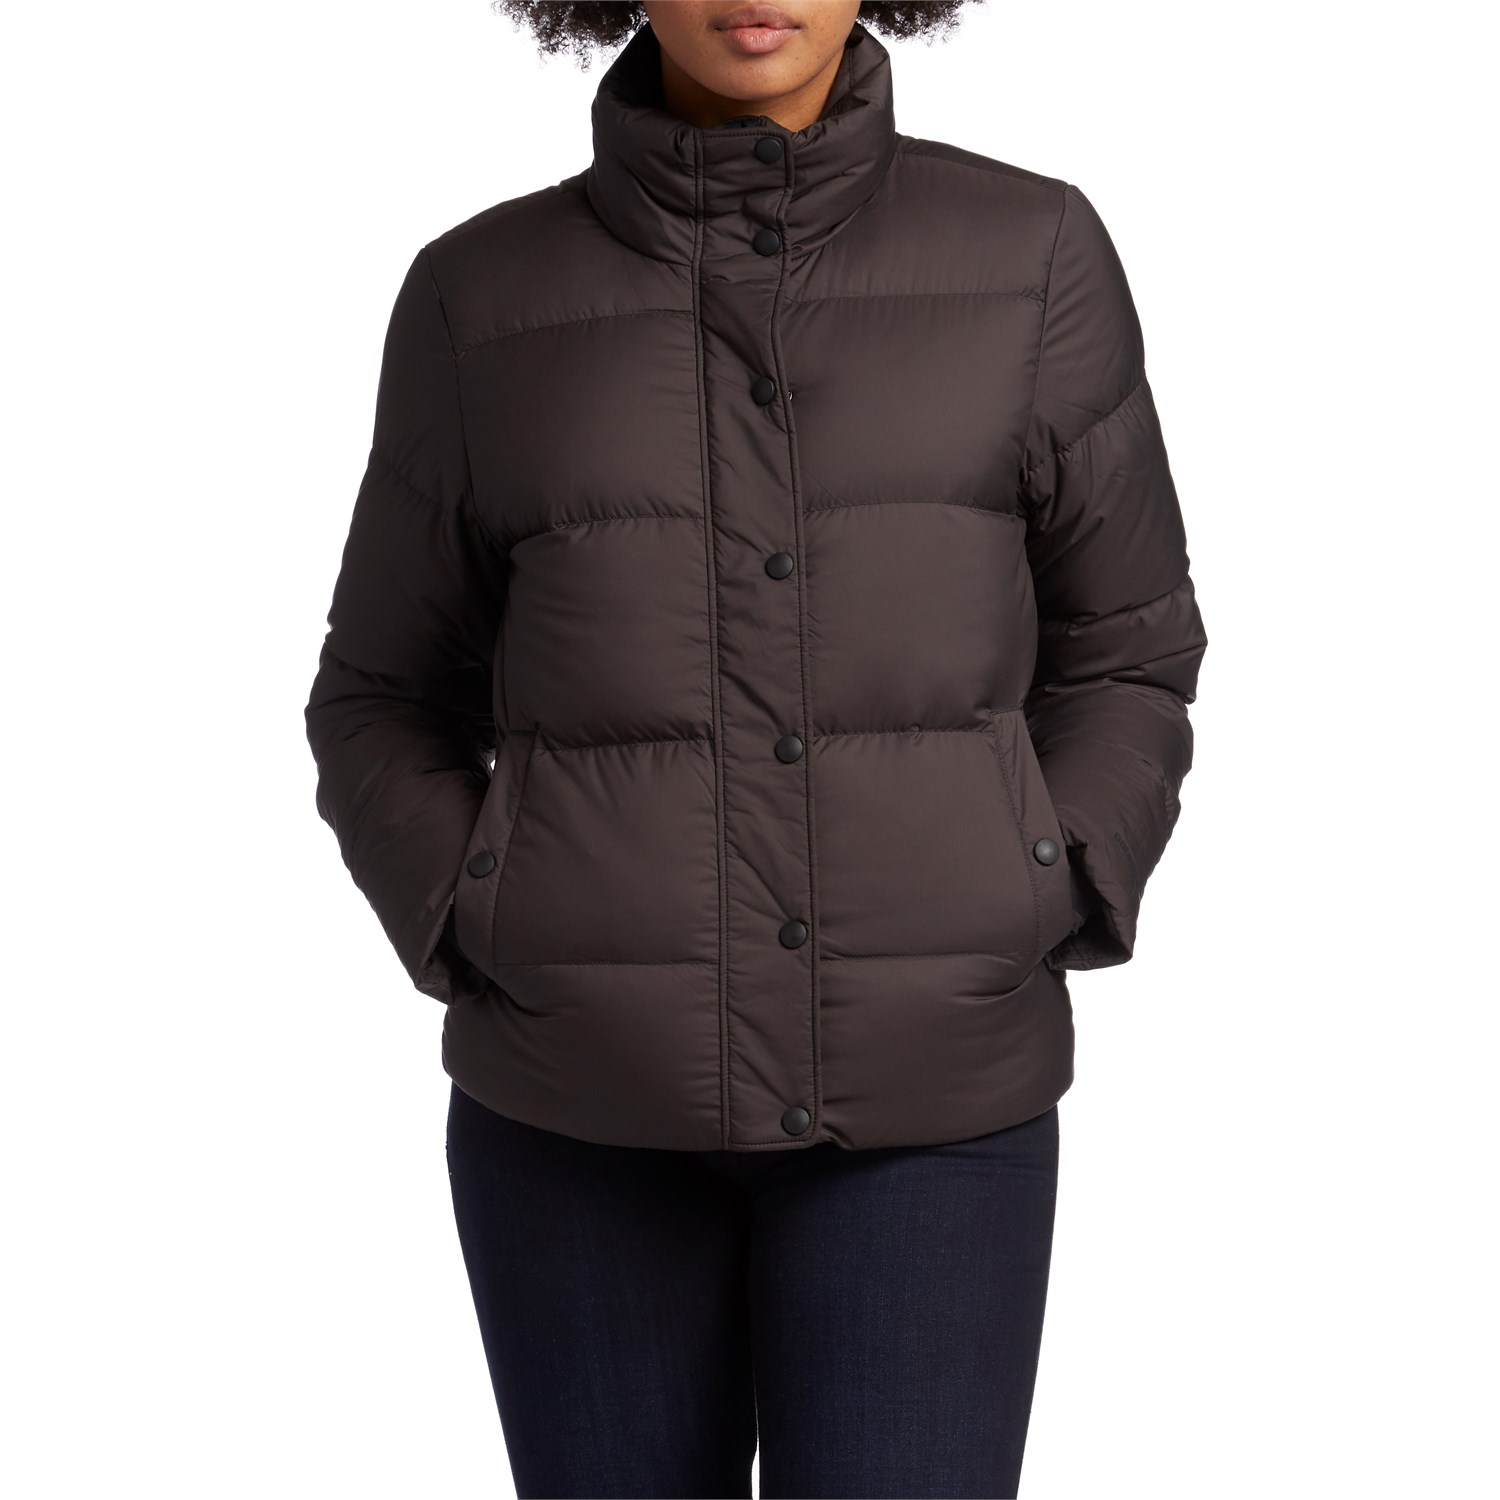 size Small Patagonia Women/'s Silent Down Parka 27940